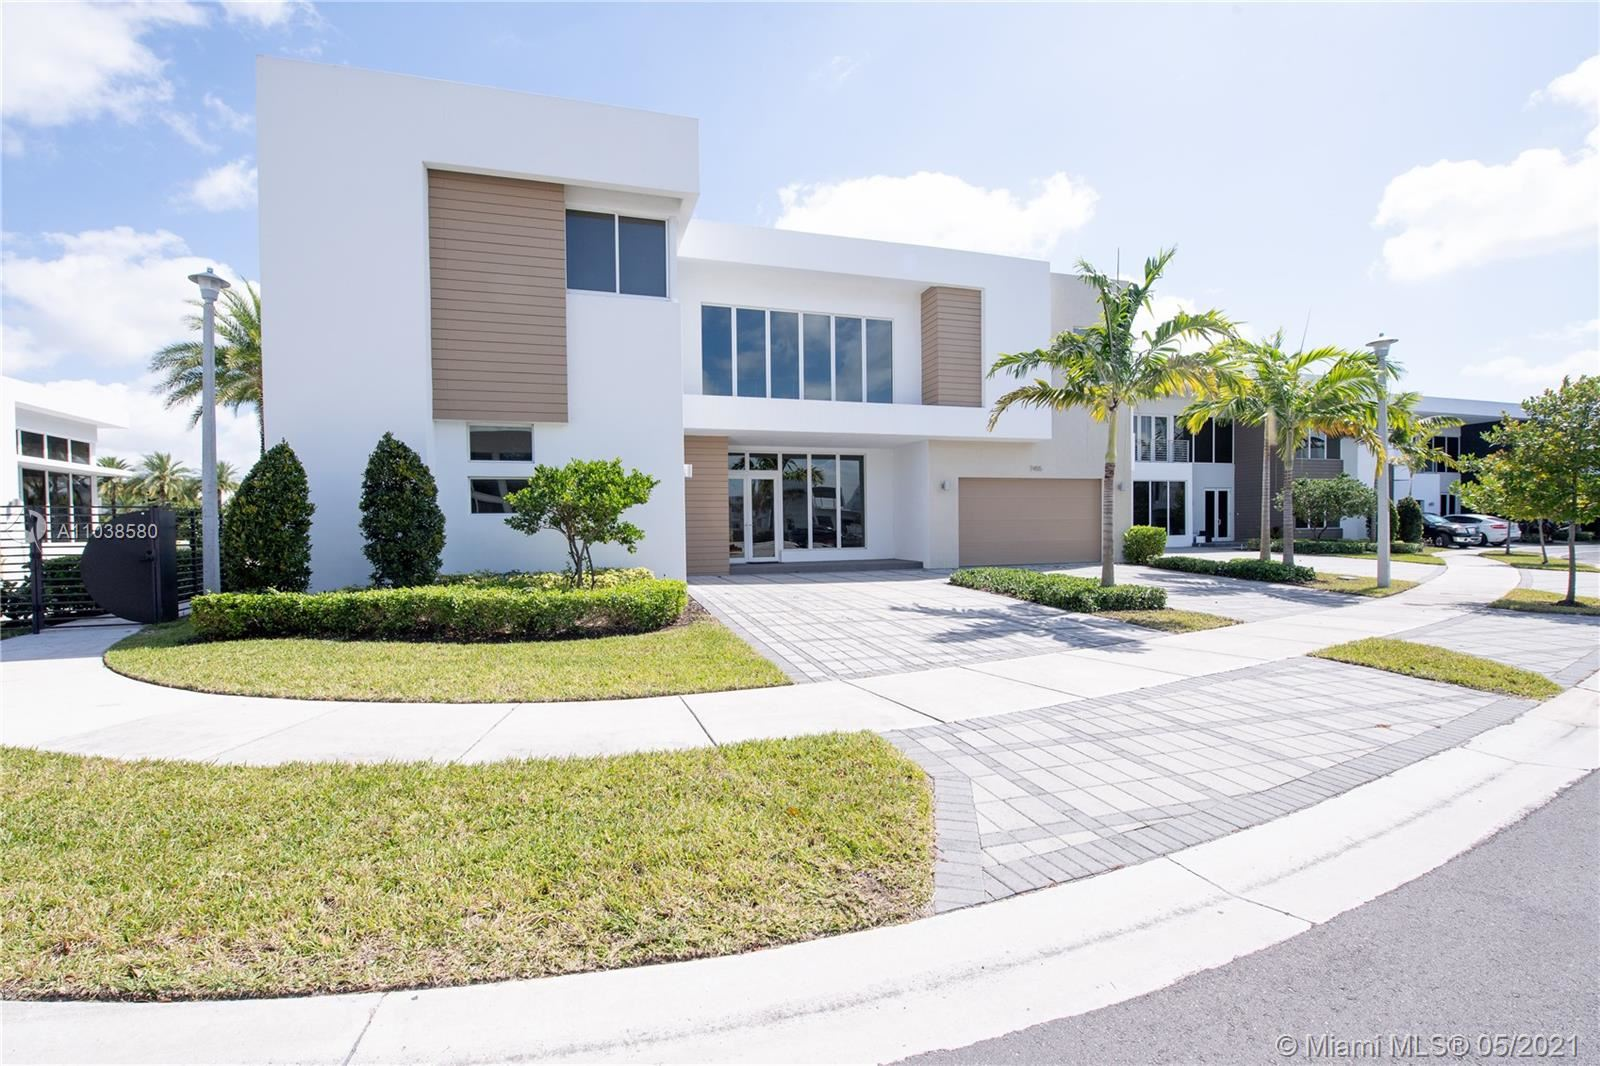 7455 NW 102nd Ct, Doral, FL 33178 - #: A11038580